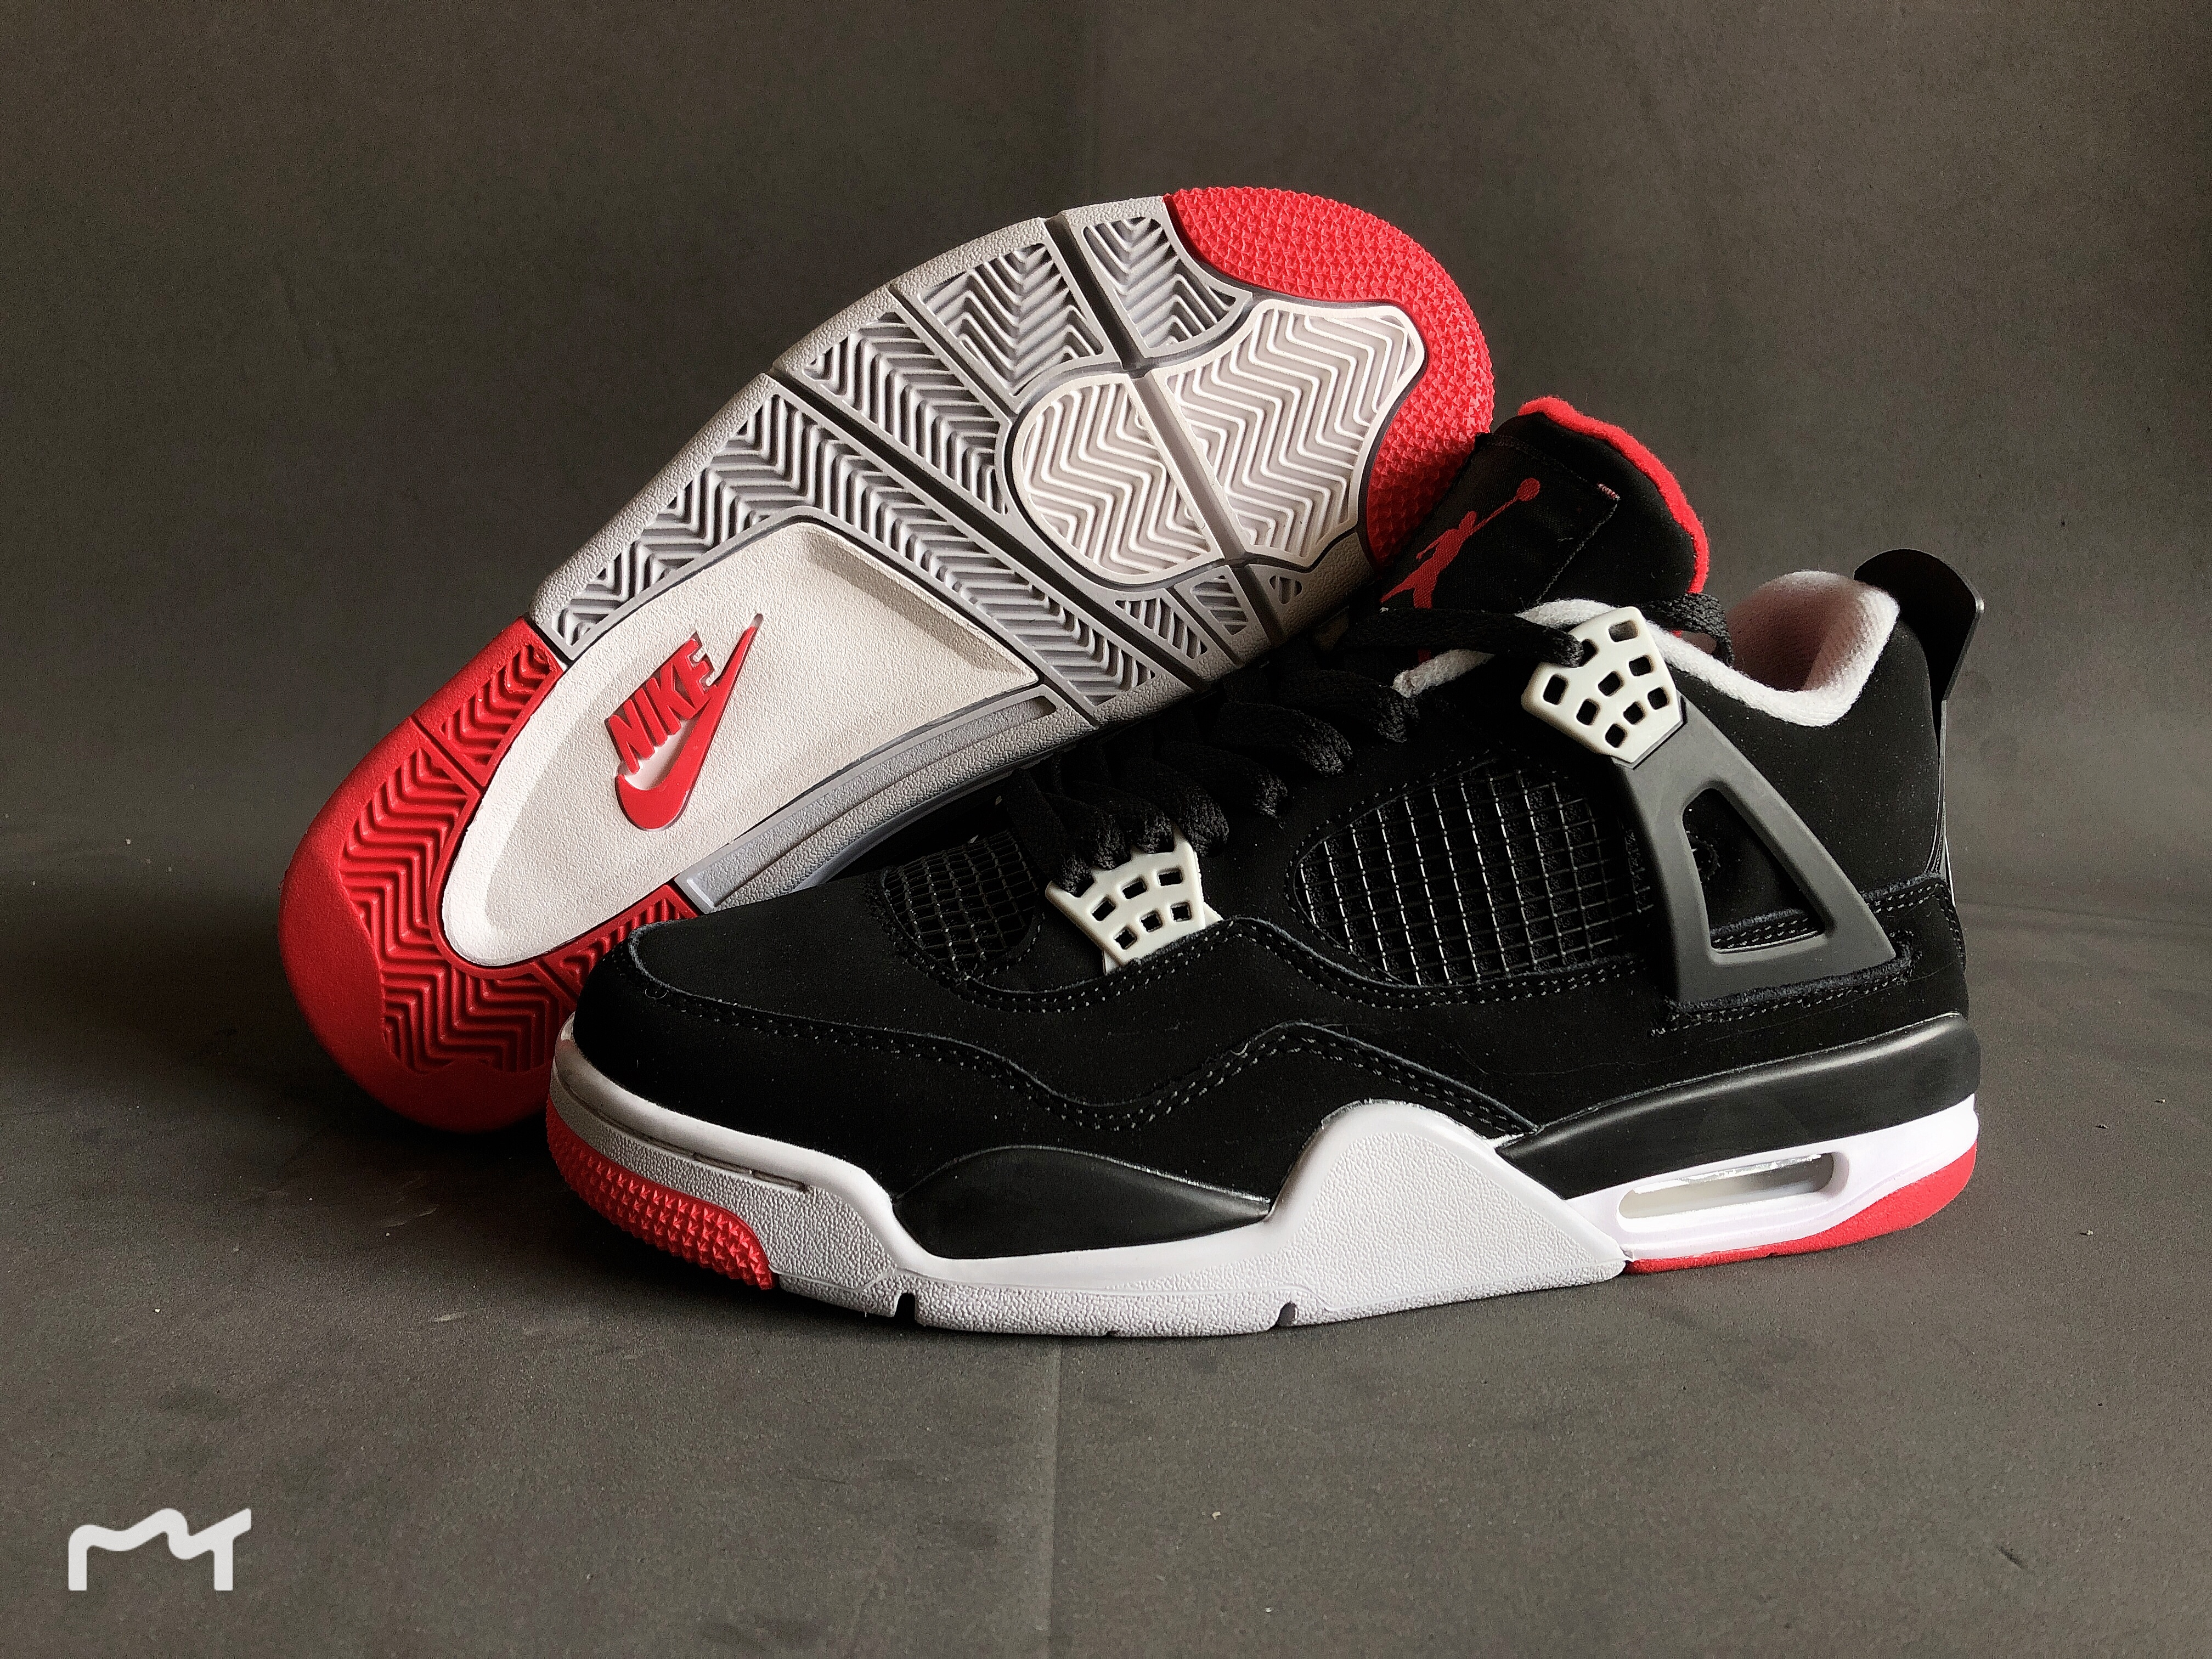 Jordan Shoes 4 Black Red For Cheap